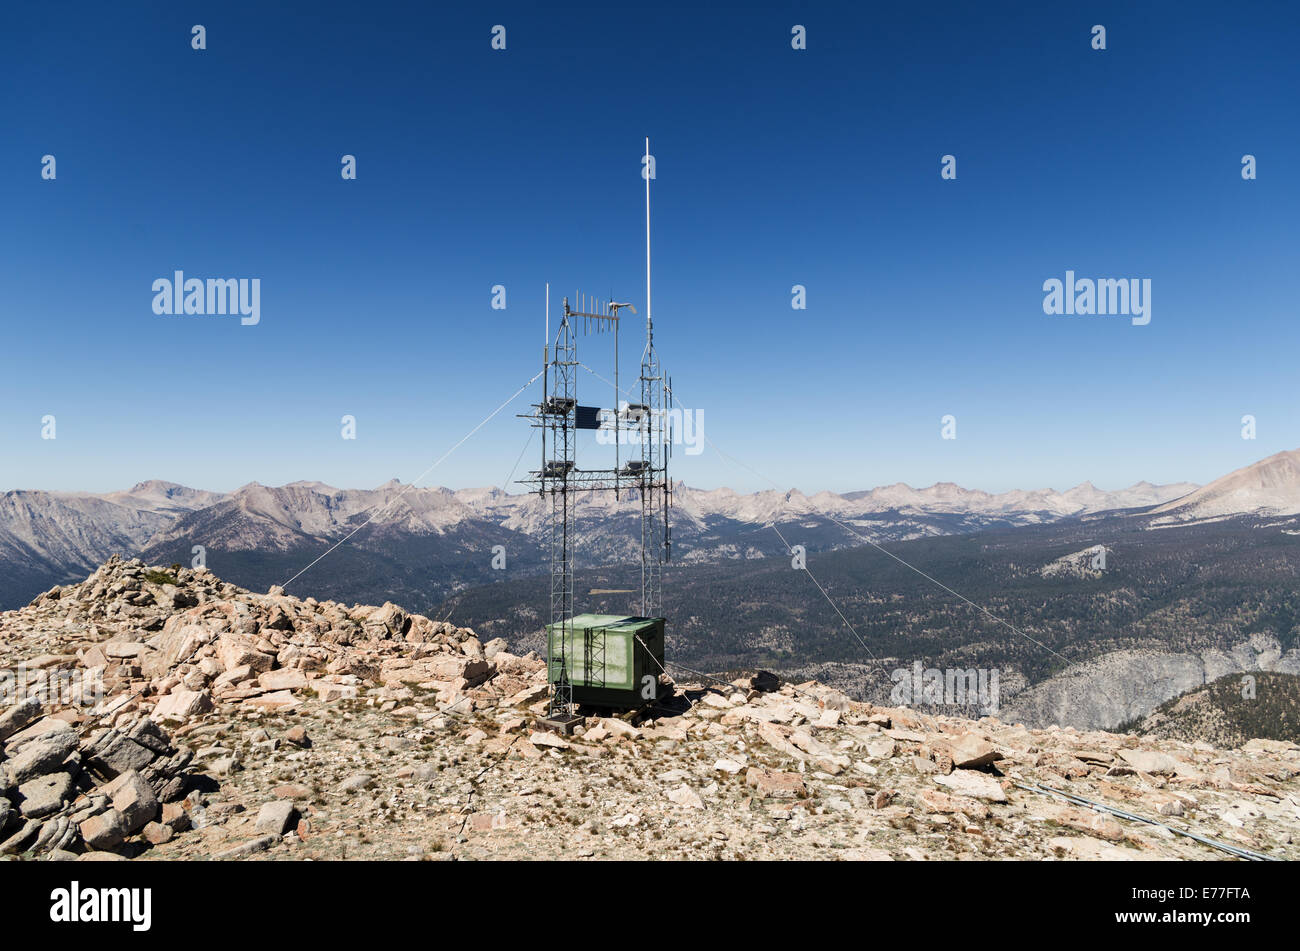 radio repeater antenna array on top of Mount Anna Mills in the southern Sierra Nevada Mountains - Stock Image